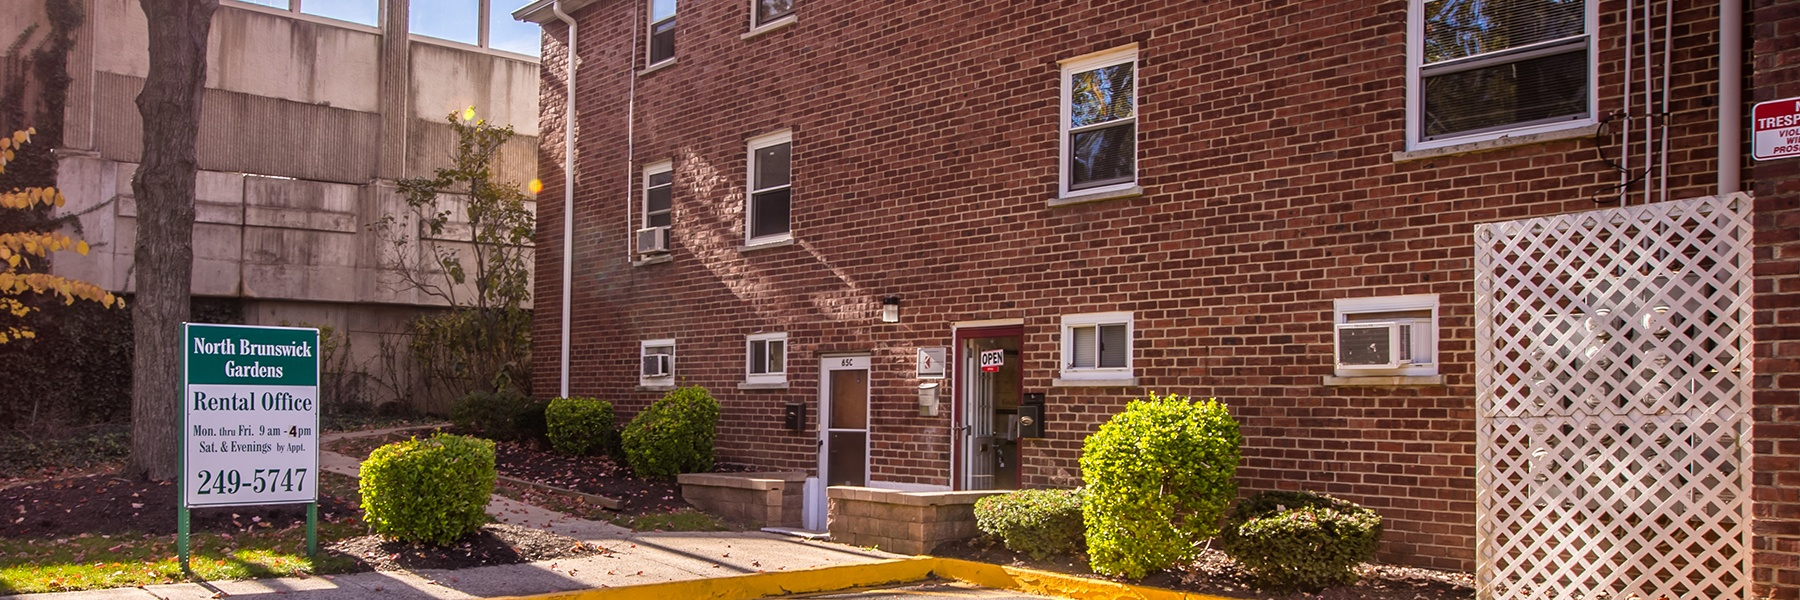 North Brunswick Gardens Apartments For Rent in North Brunswick, NJ Rental Office